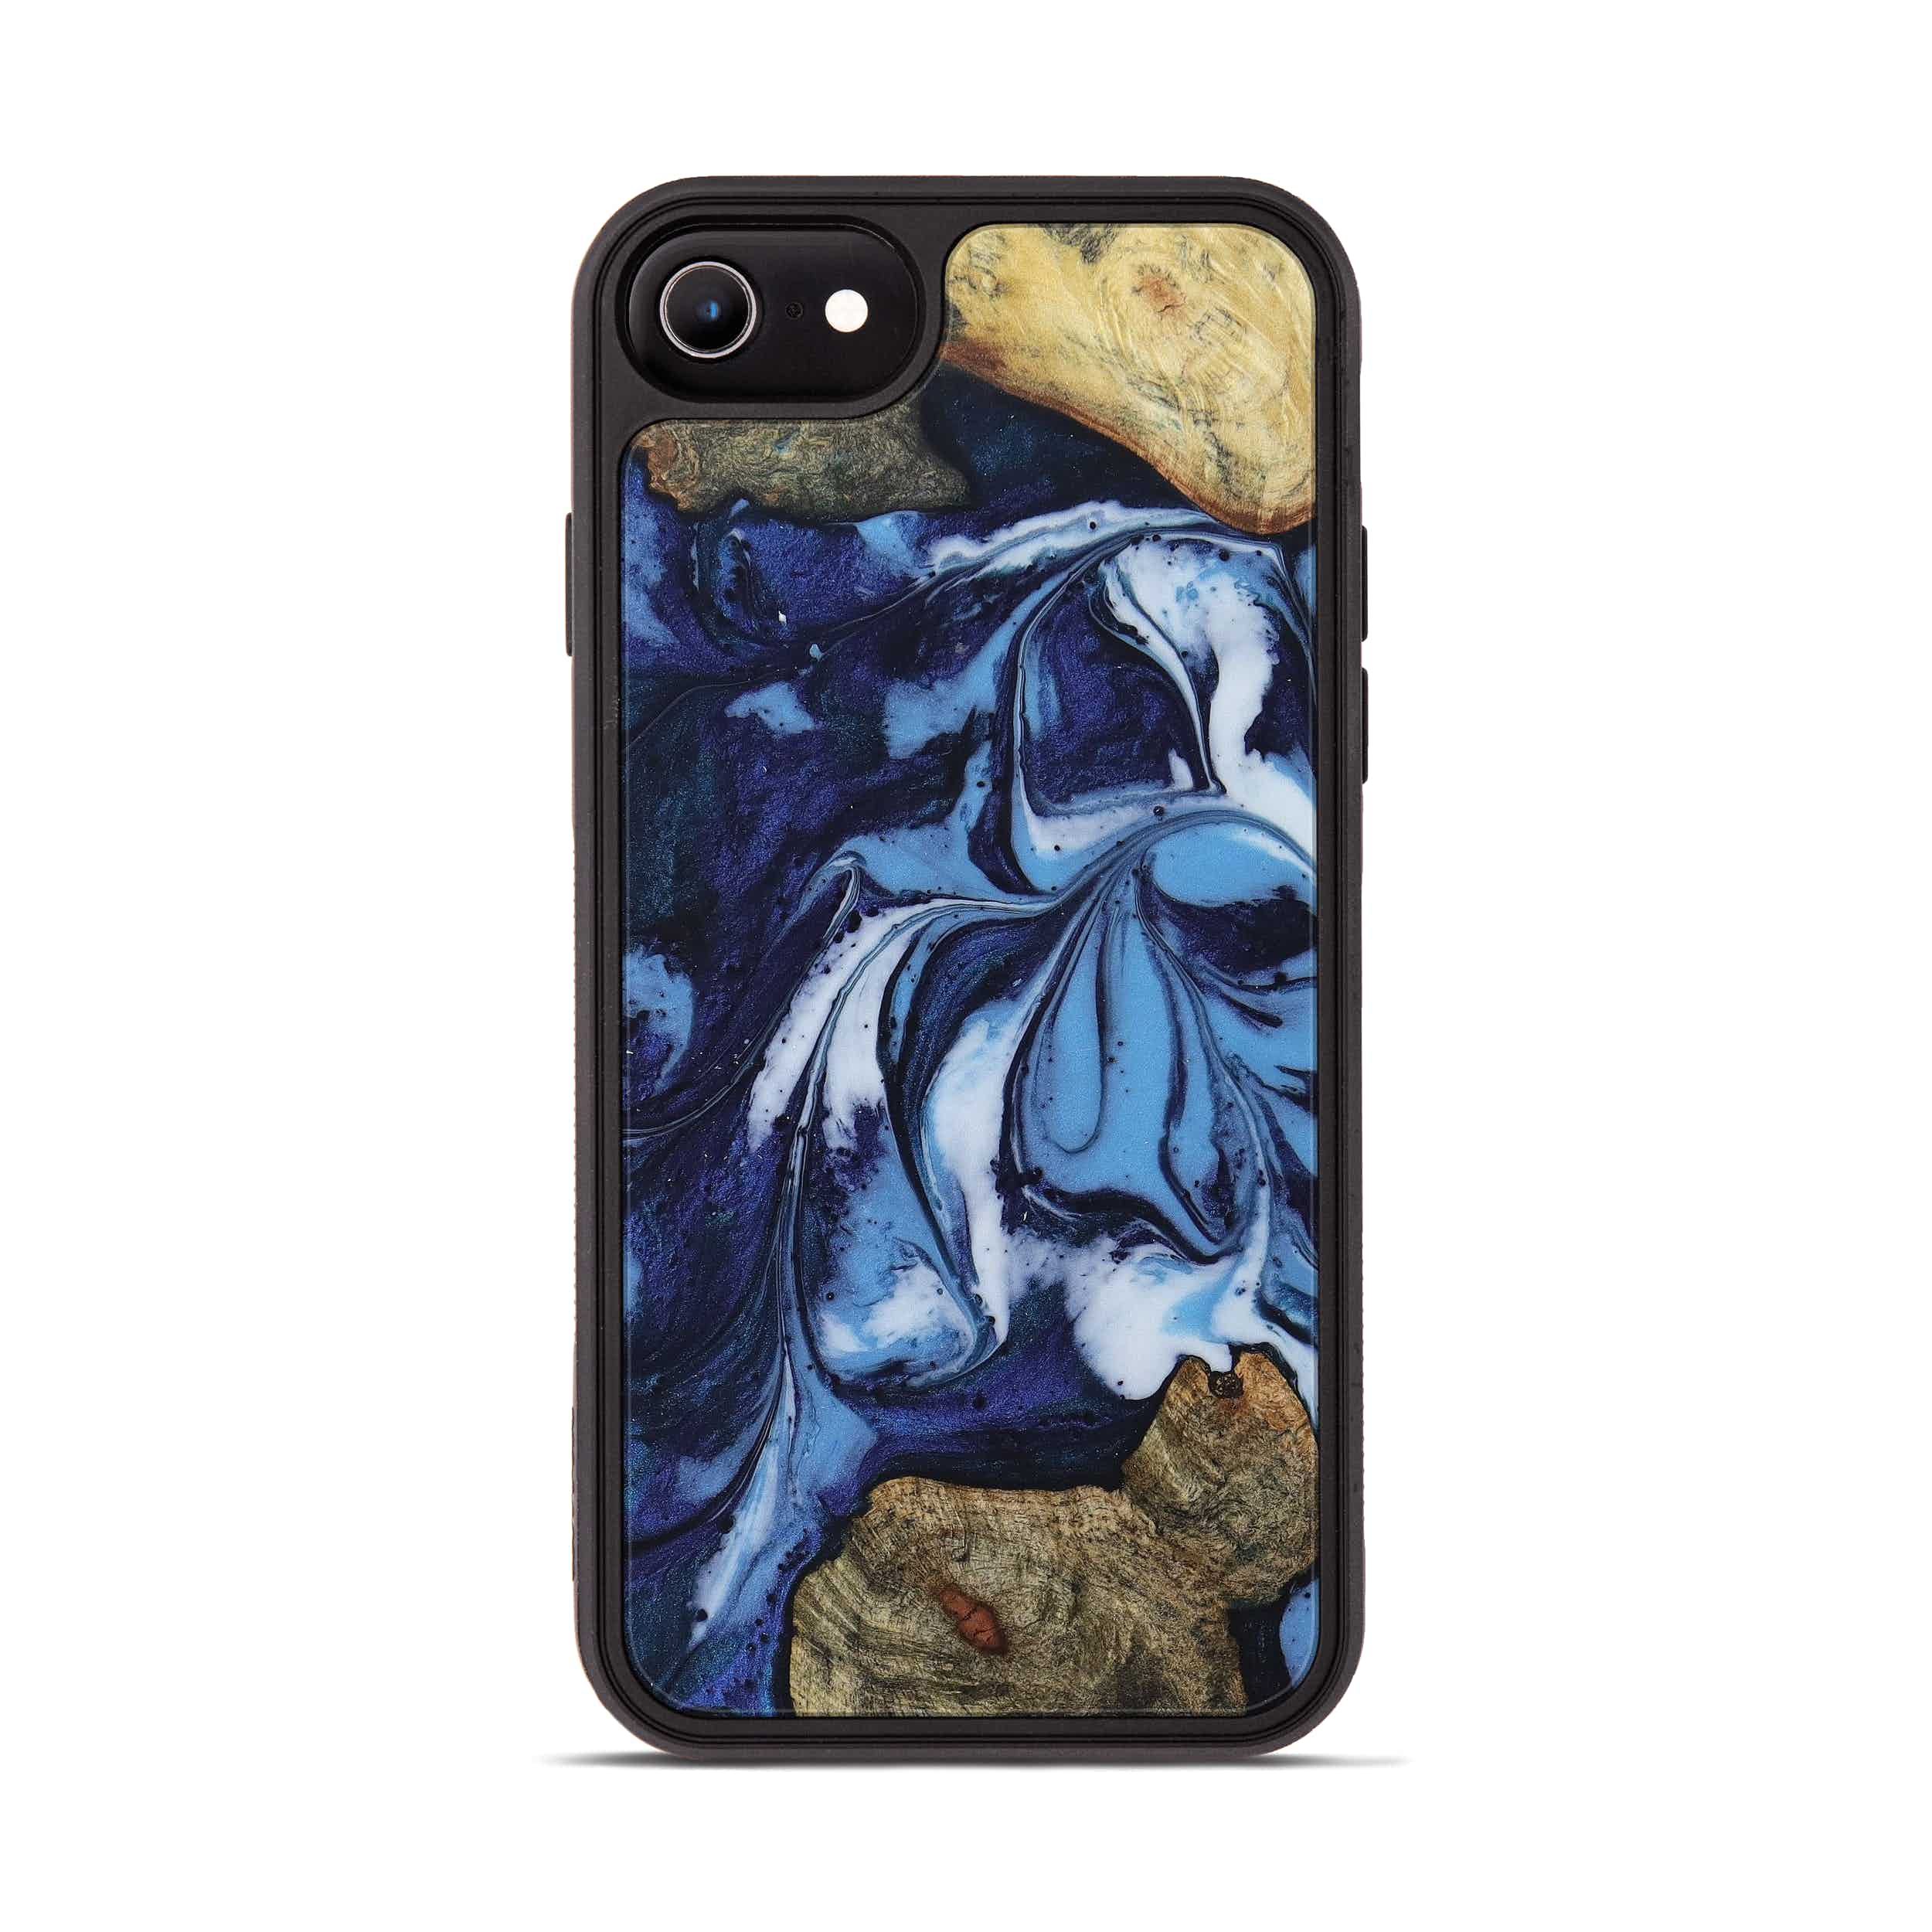 iPhone 6s Wood+Resin Phone Case - Gerben (Dark Blue, 394647)